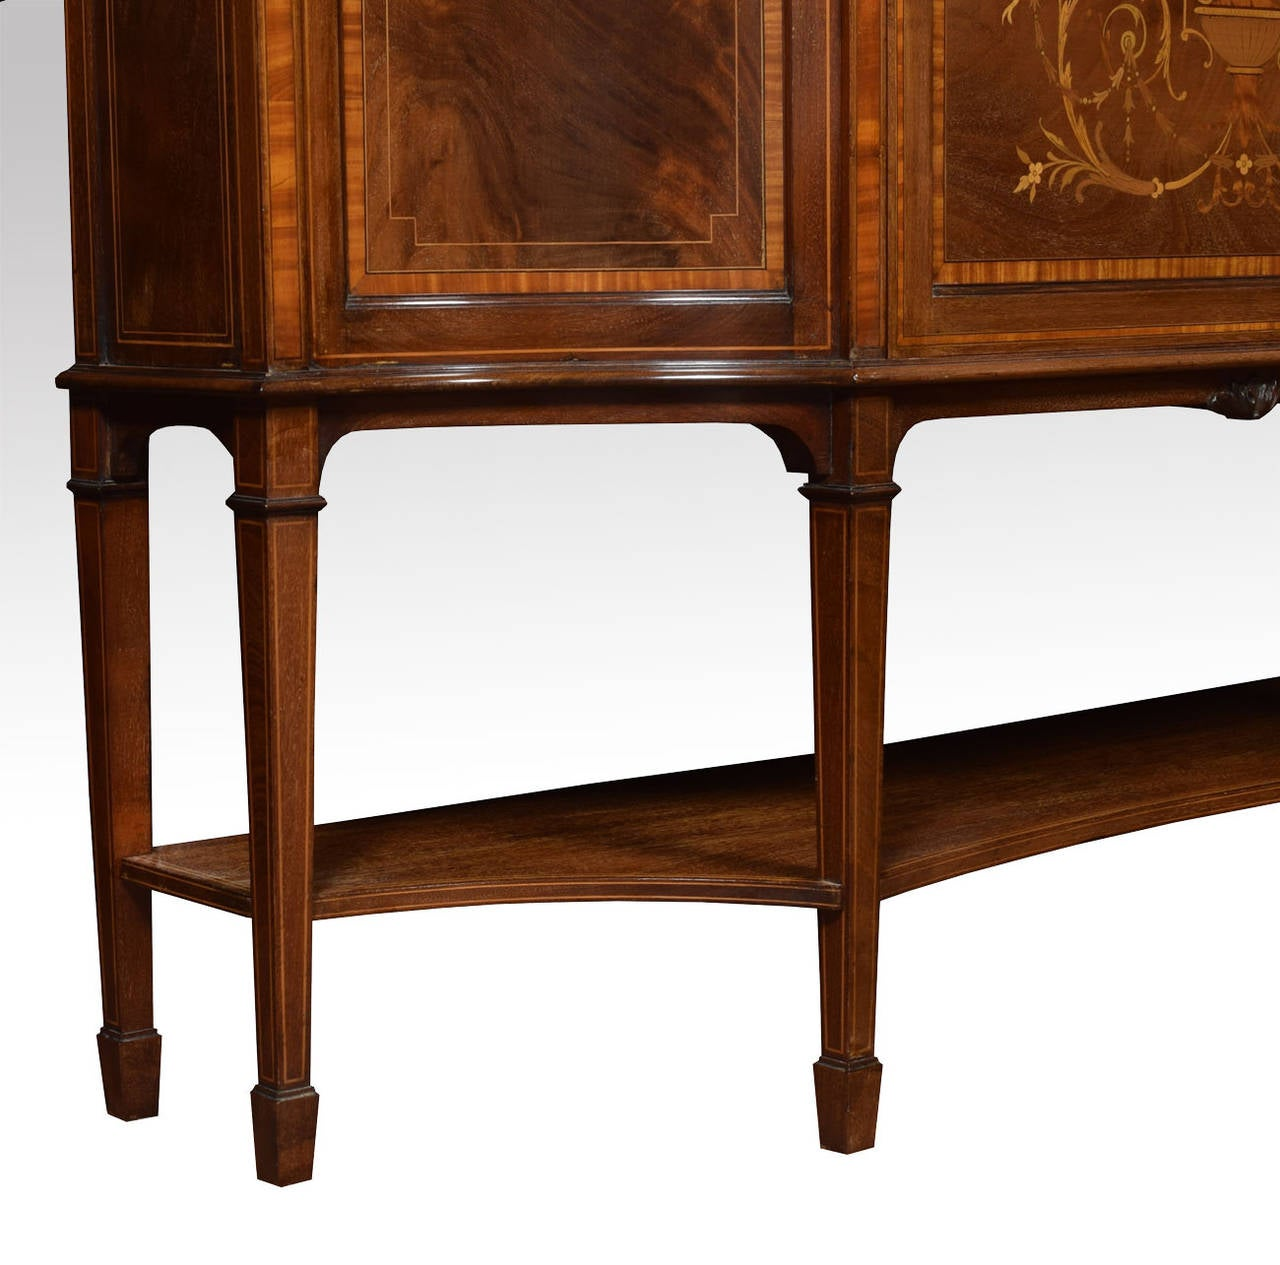 Late 19th Century Mahogany Sheraton Revival Inlaid Display Cabinet 4